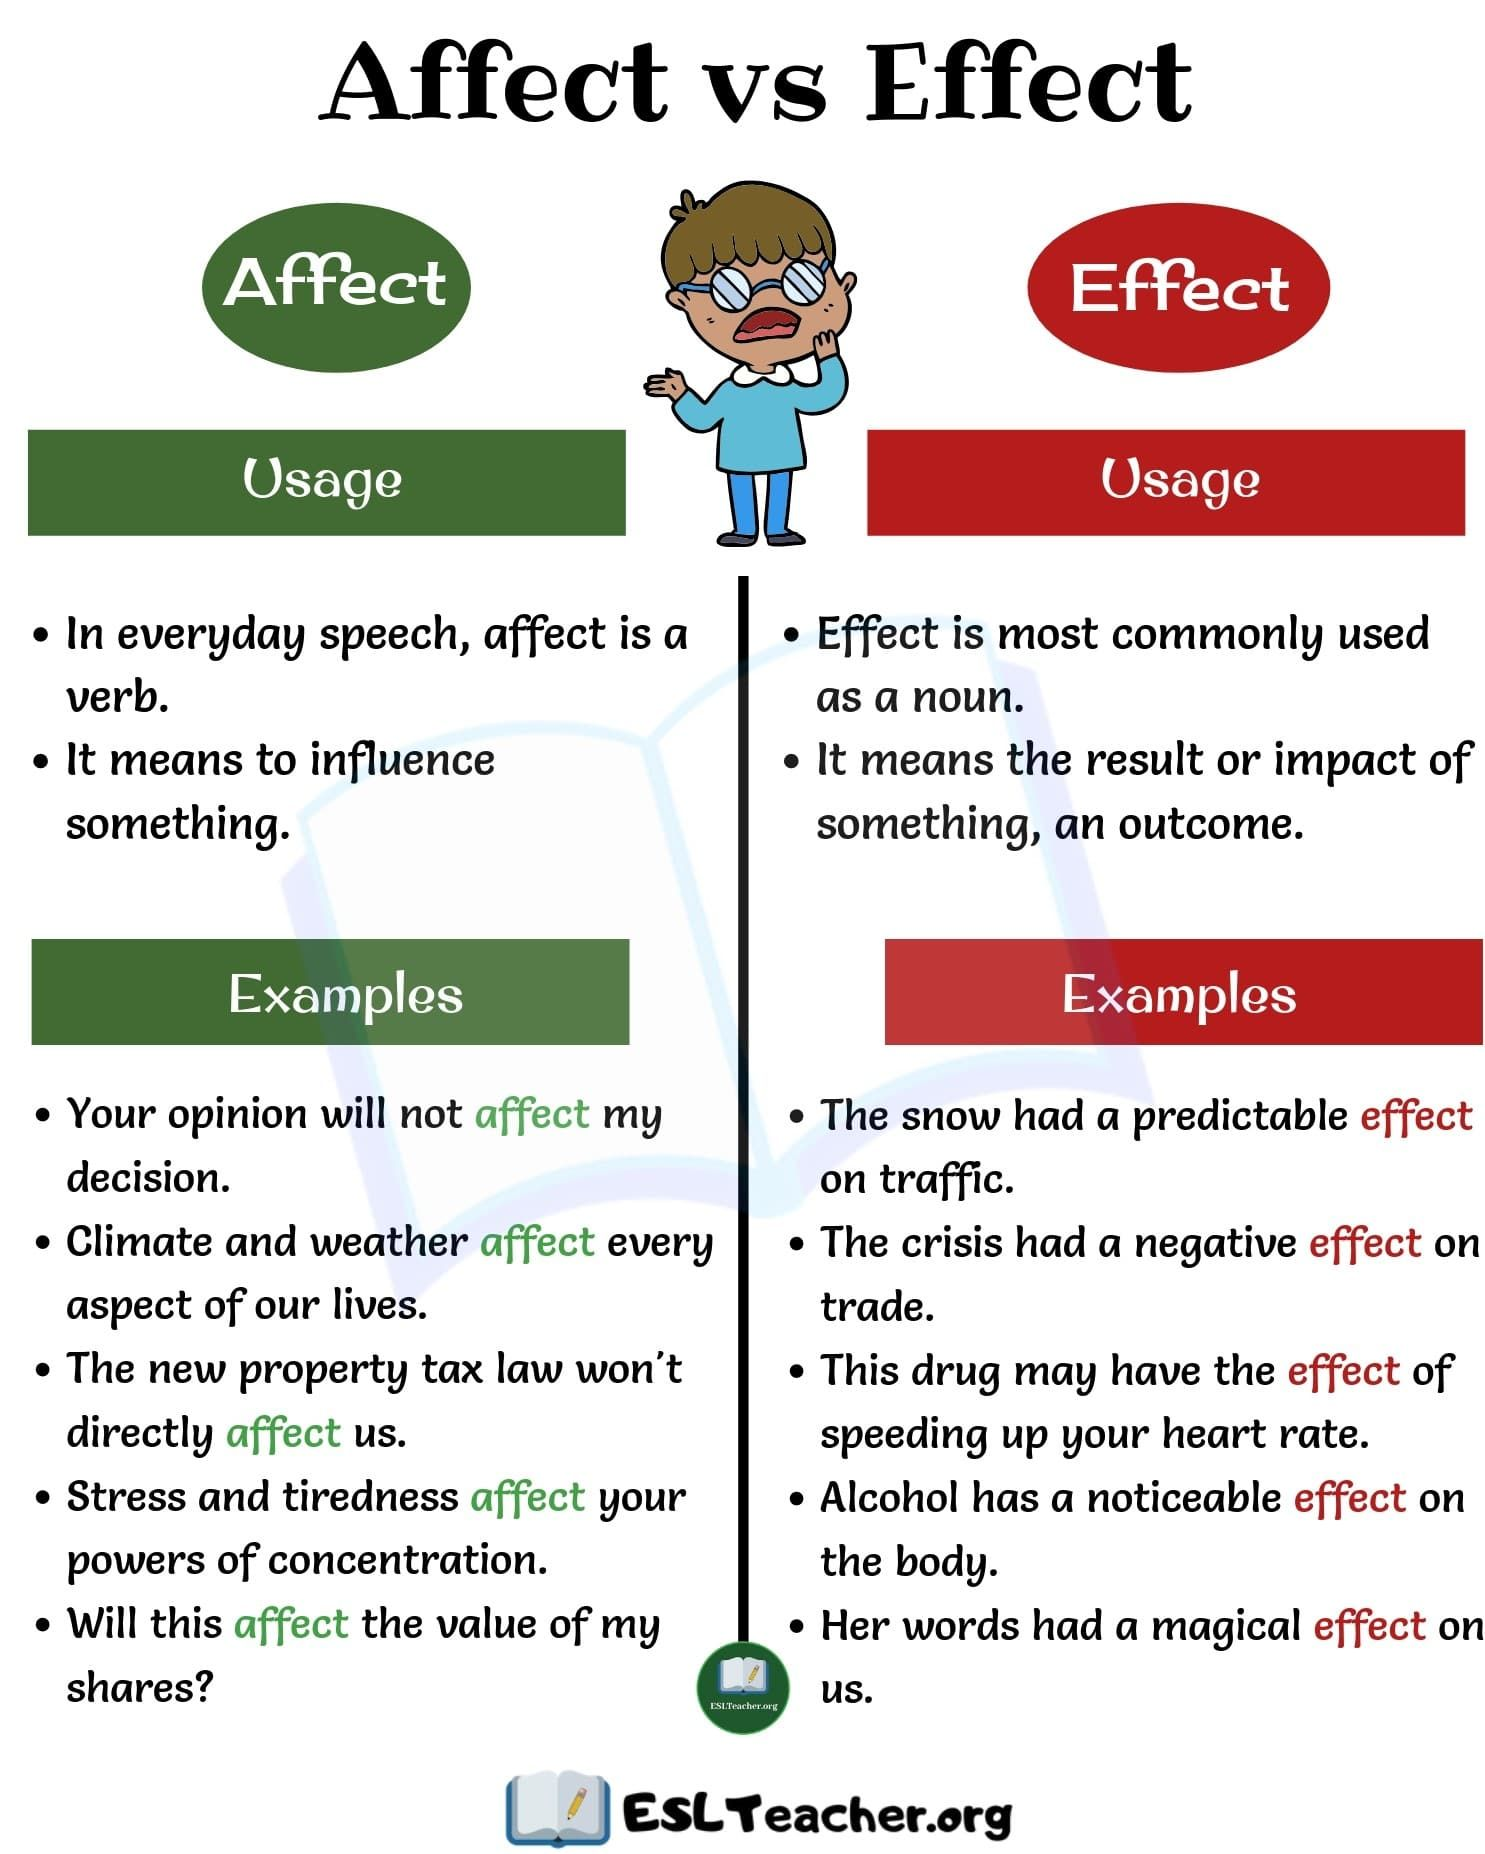 medium resolution of Affect vs Effect: How to Use Effect vs Affect Correctly - ESL Teacher    Word skills